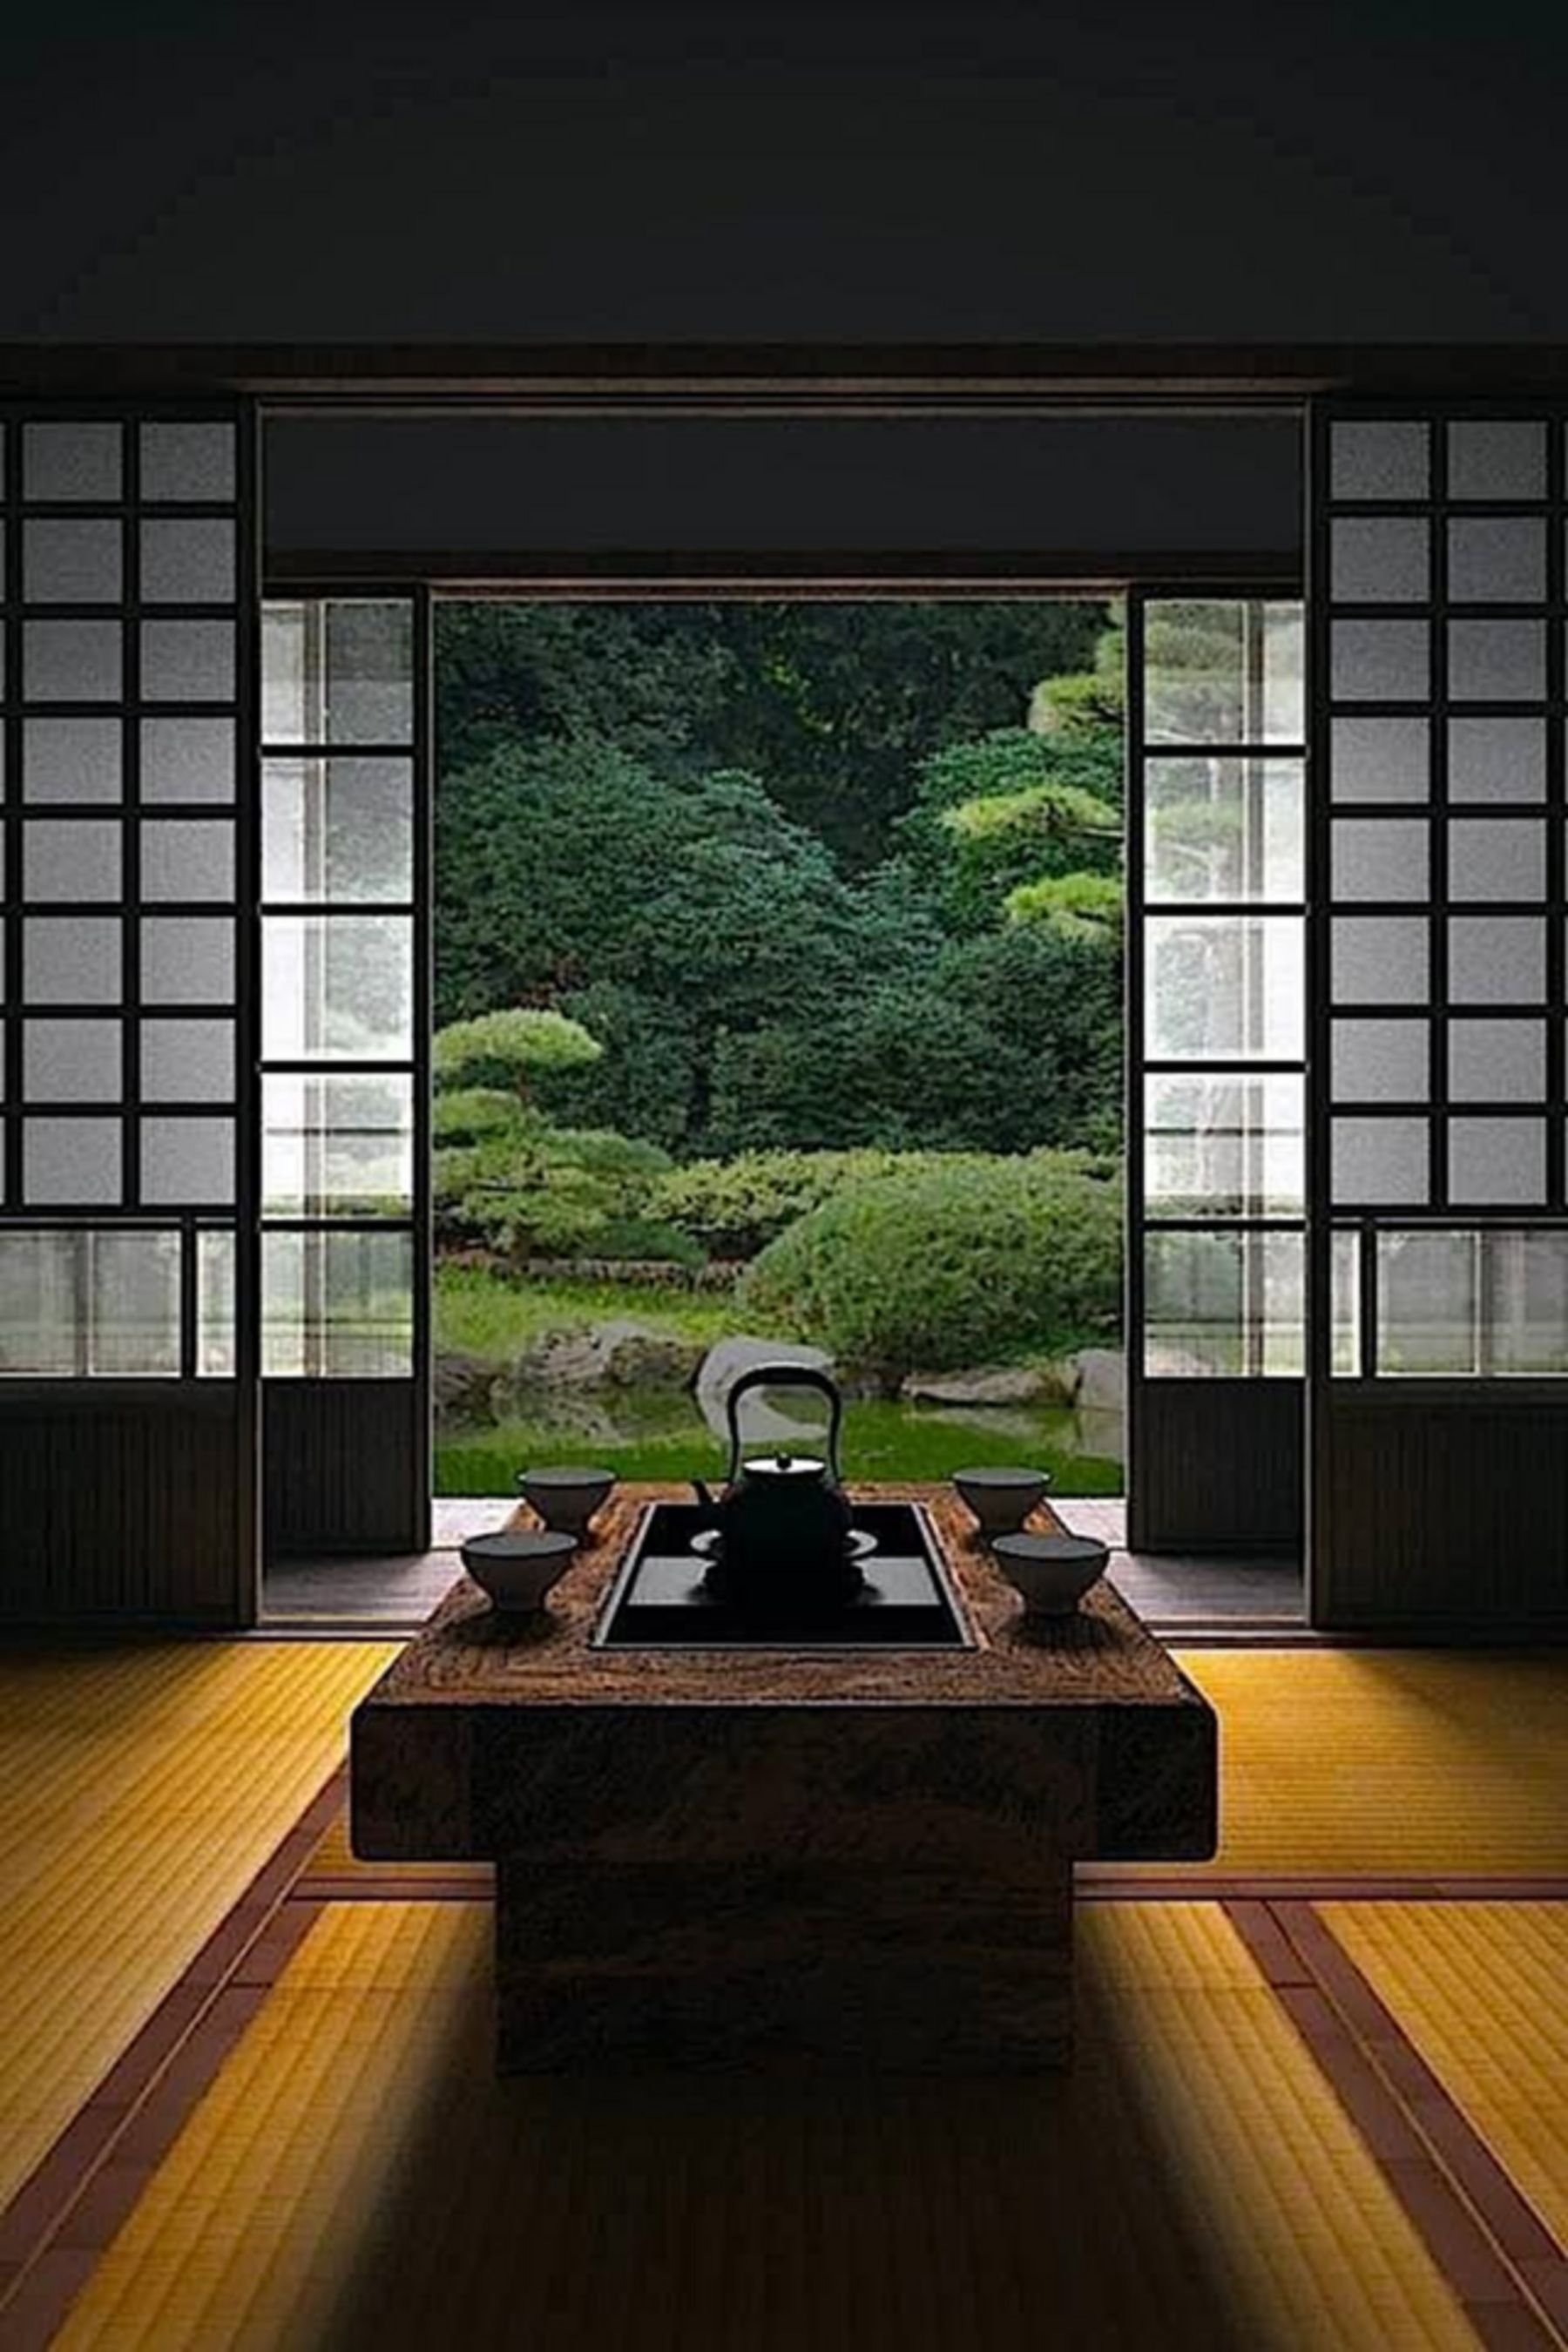 20 Popular Traditional Living Room With Japanese Styles For Your Home More Beautiful Inspiration Japanese Interior Design Japanese House Japanese Decor #traditional #japanese #living #room